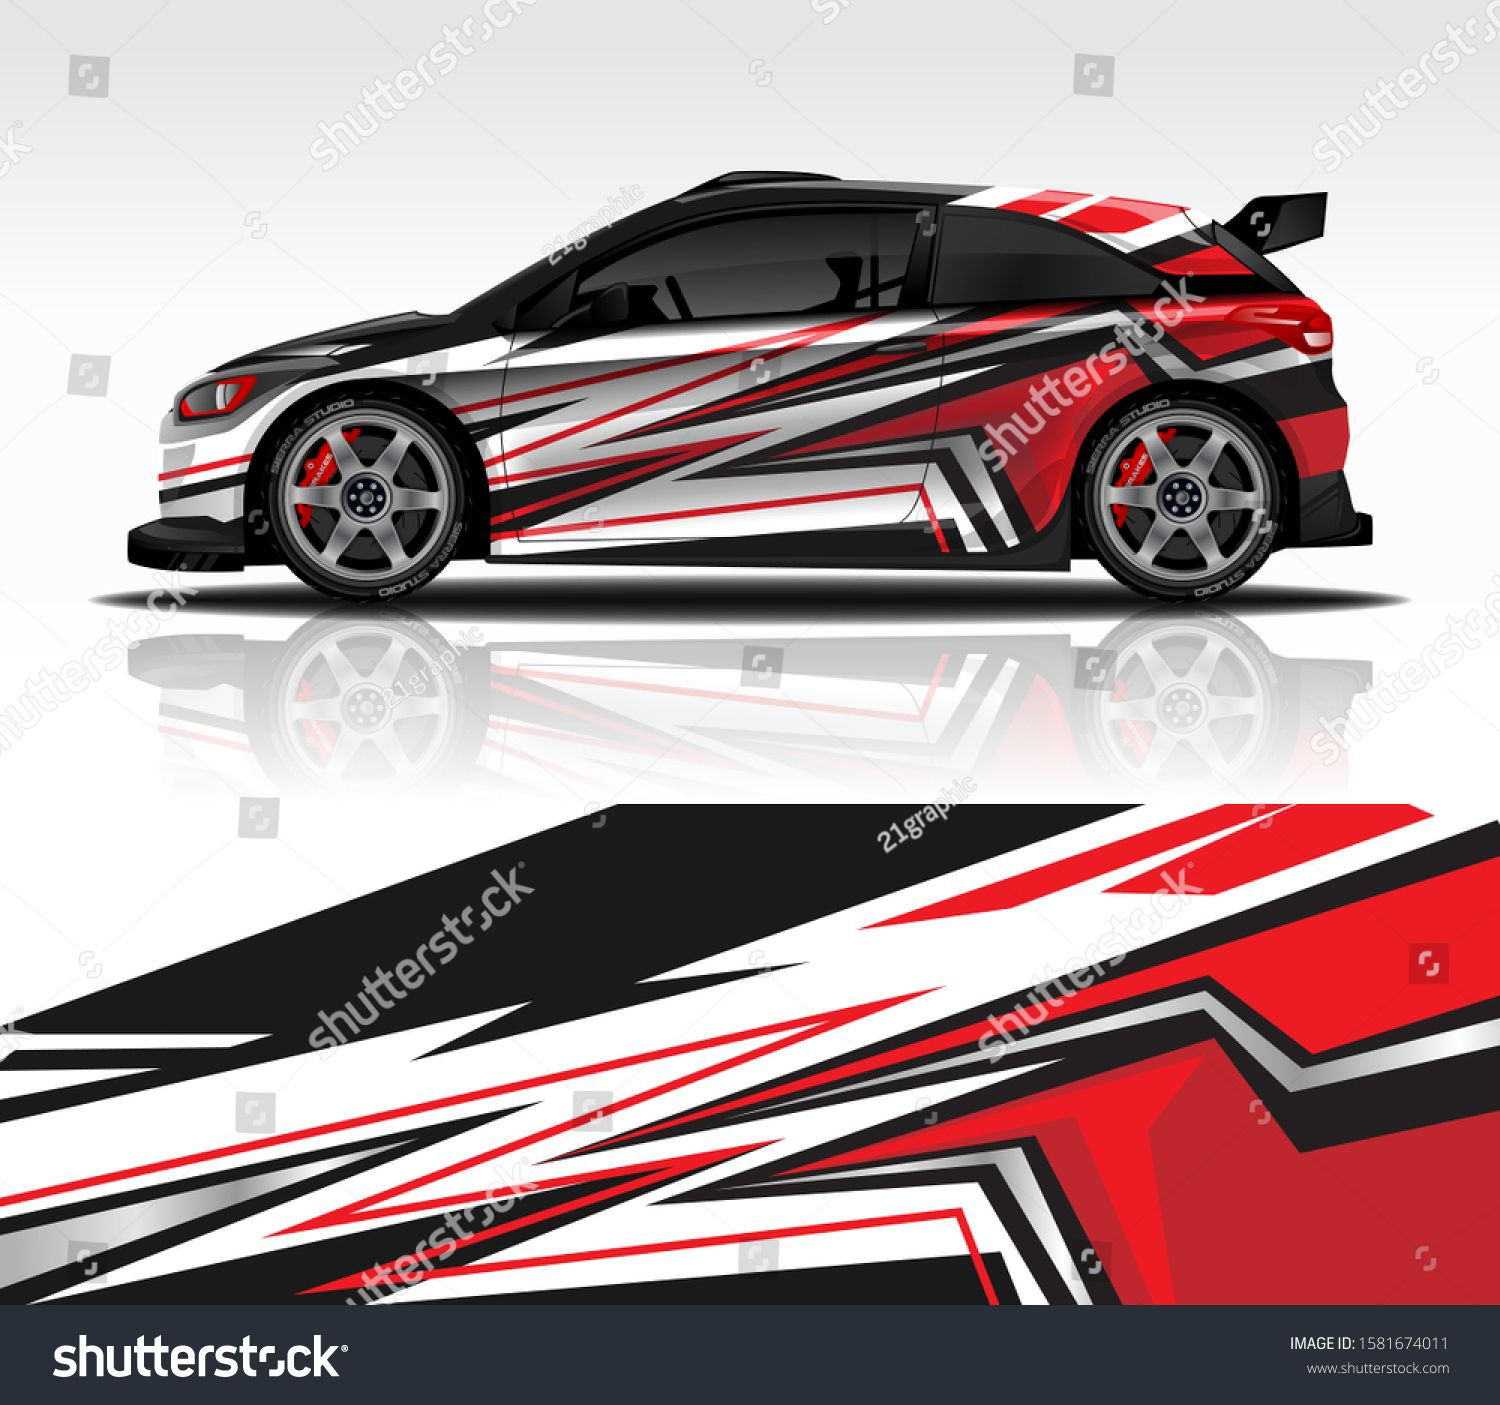 Wrap decal design for Hyundai i20 livery rally race style